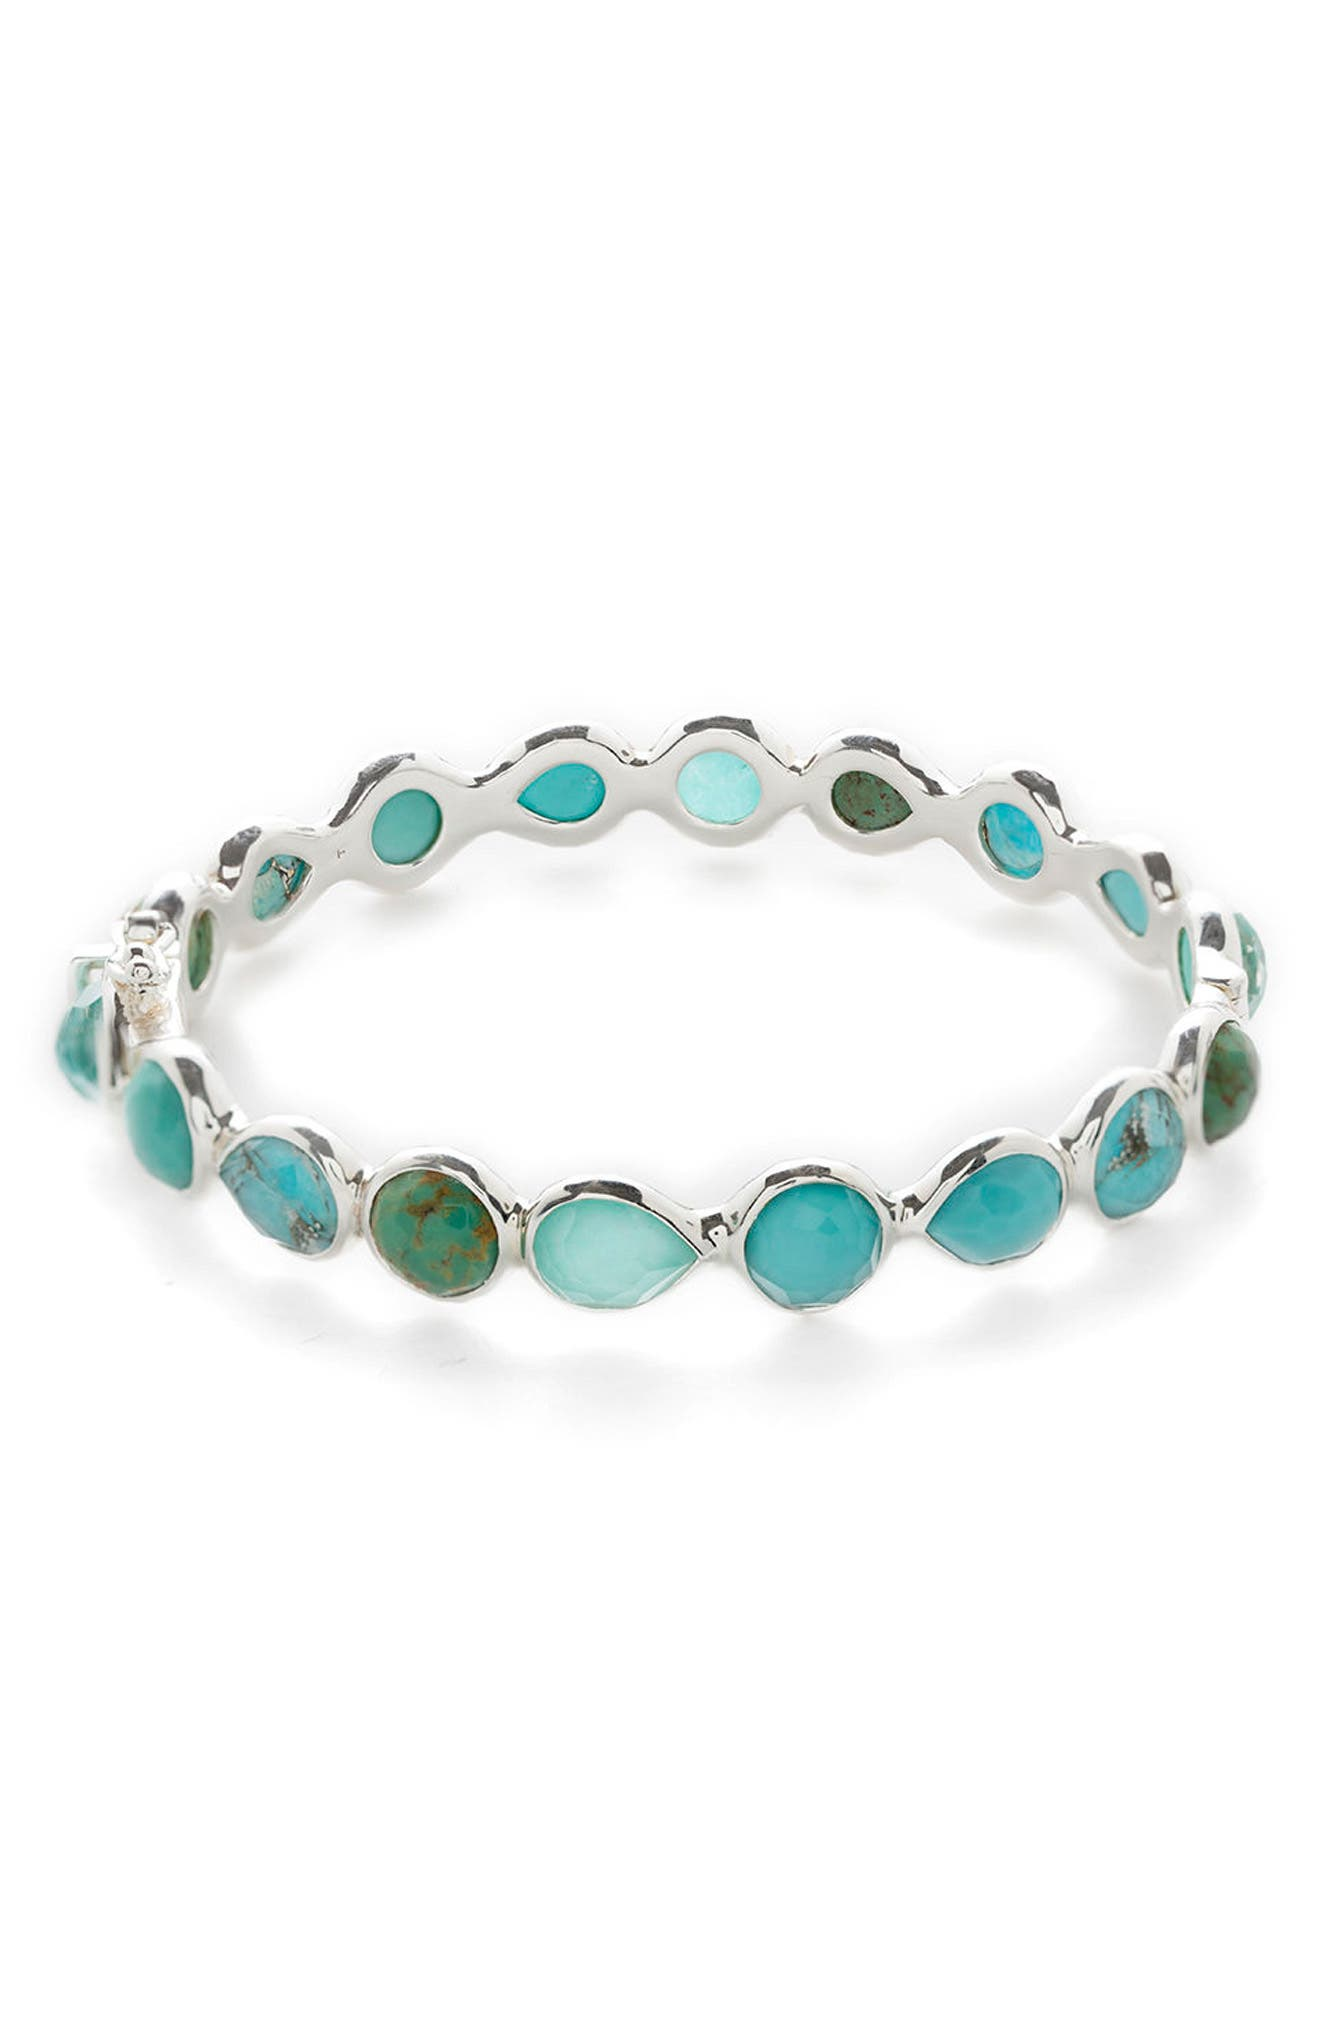 Rock Candy Bangle,                         Main,                         color, Turquoise